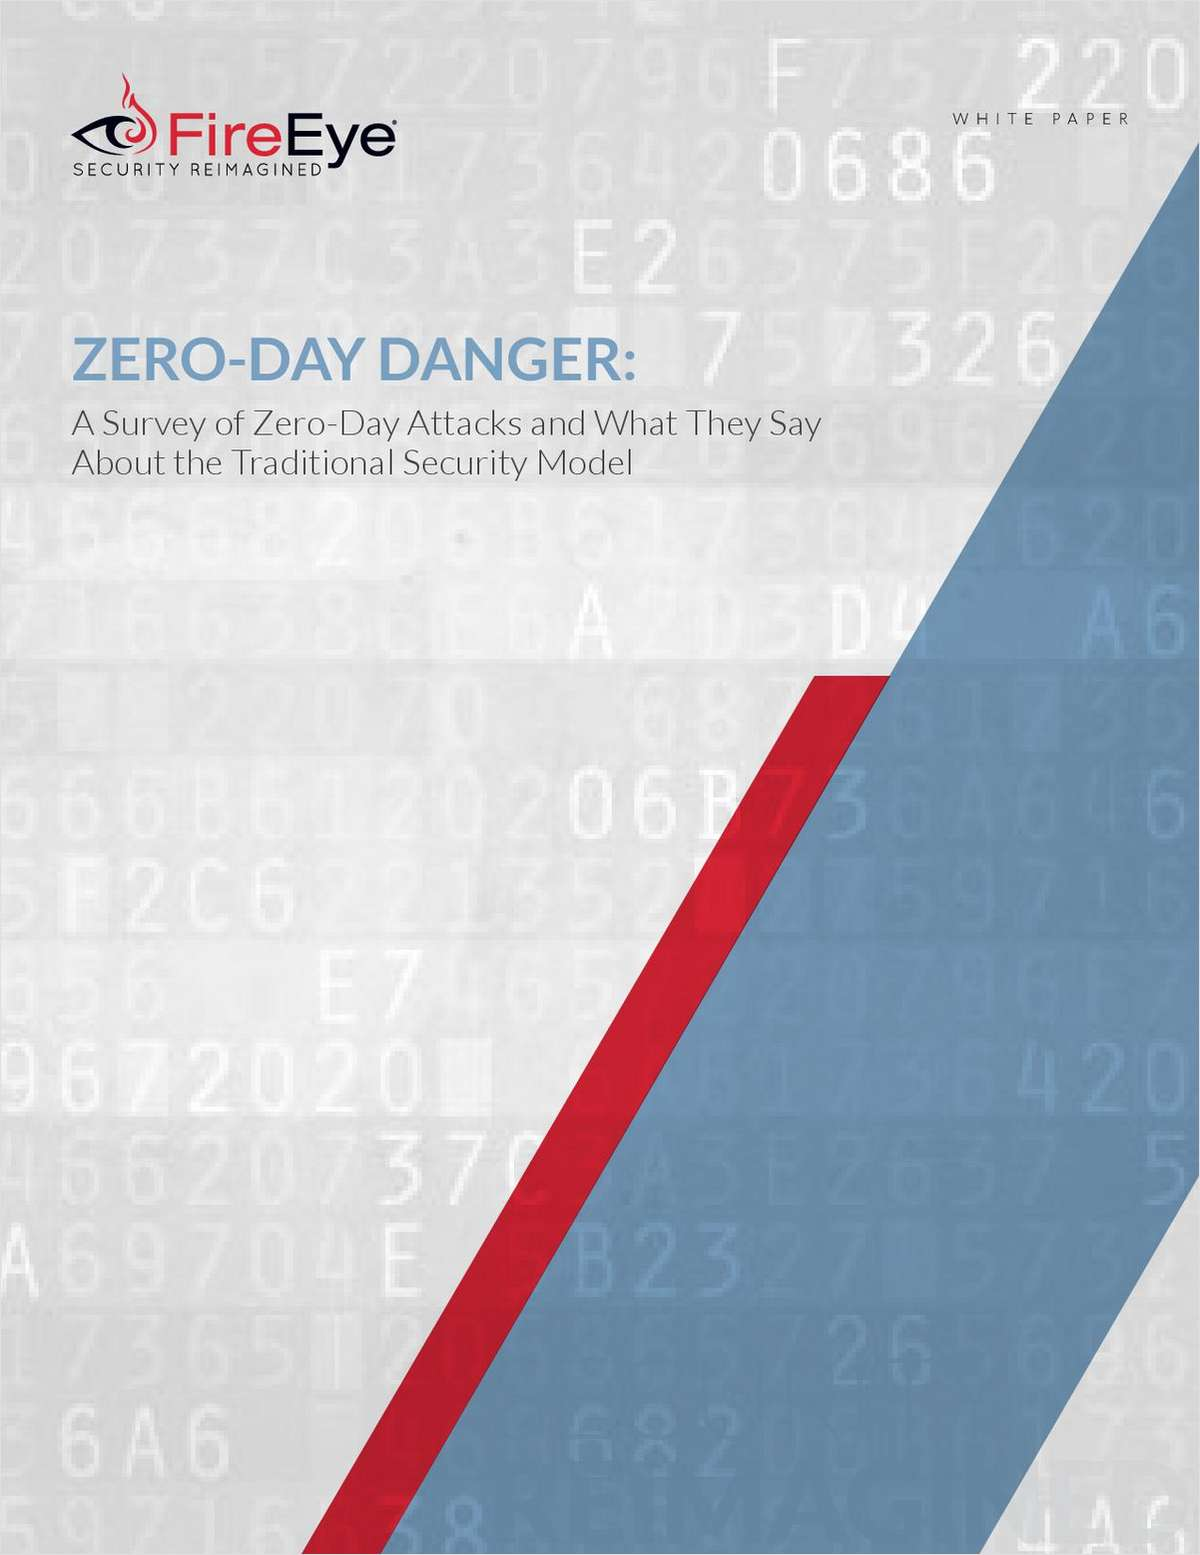 11 Practical Steps to Reduce the Risks of Zero-Day Attacks